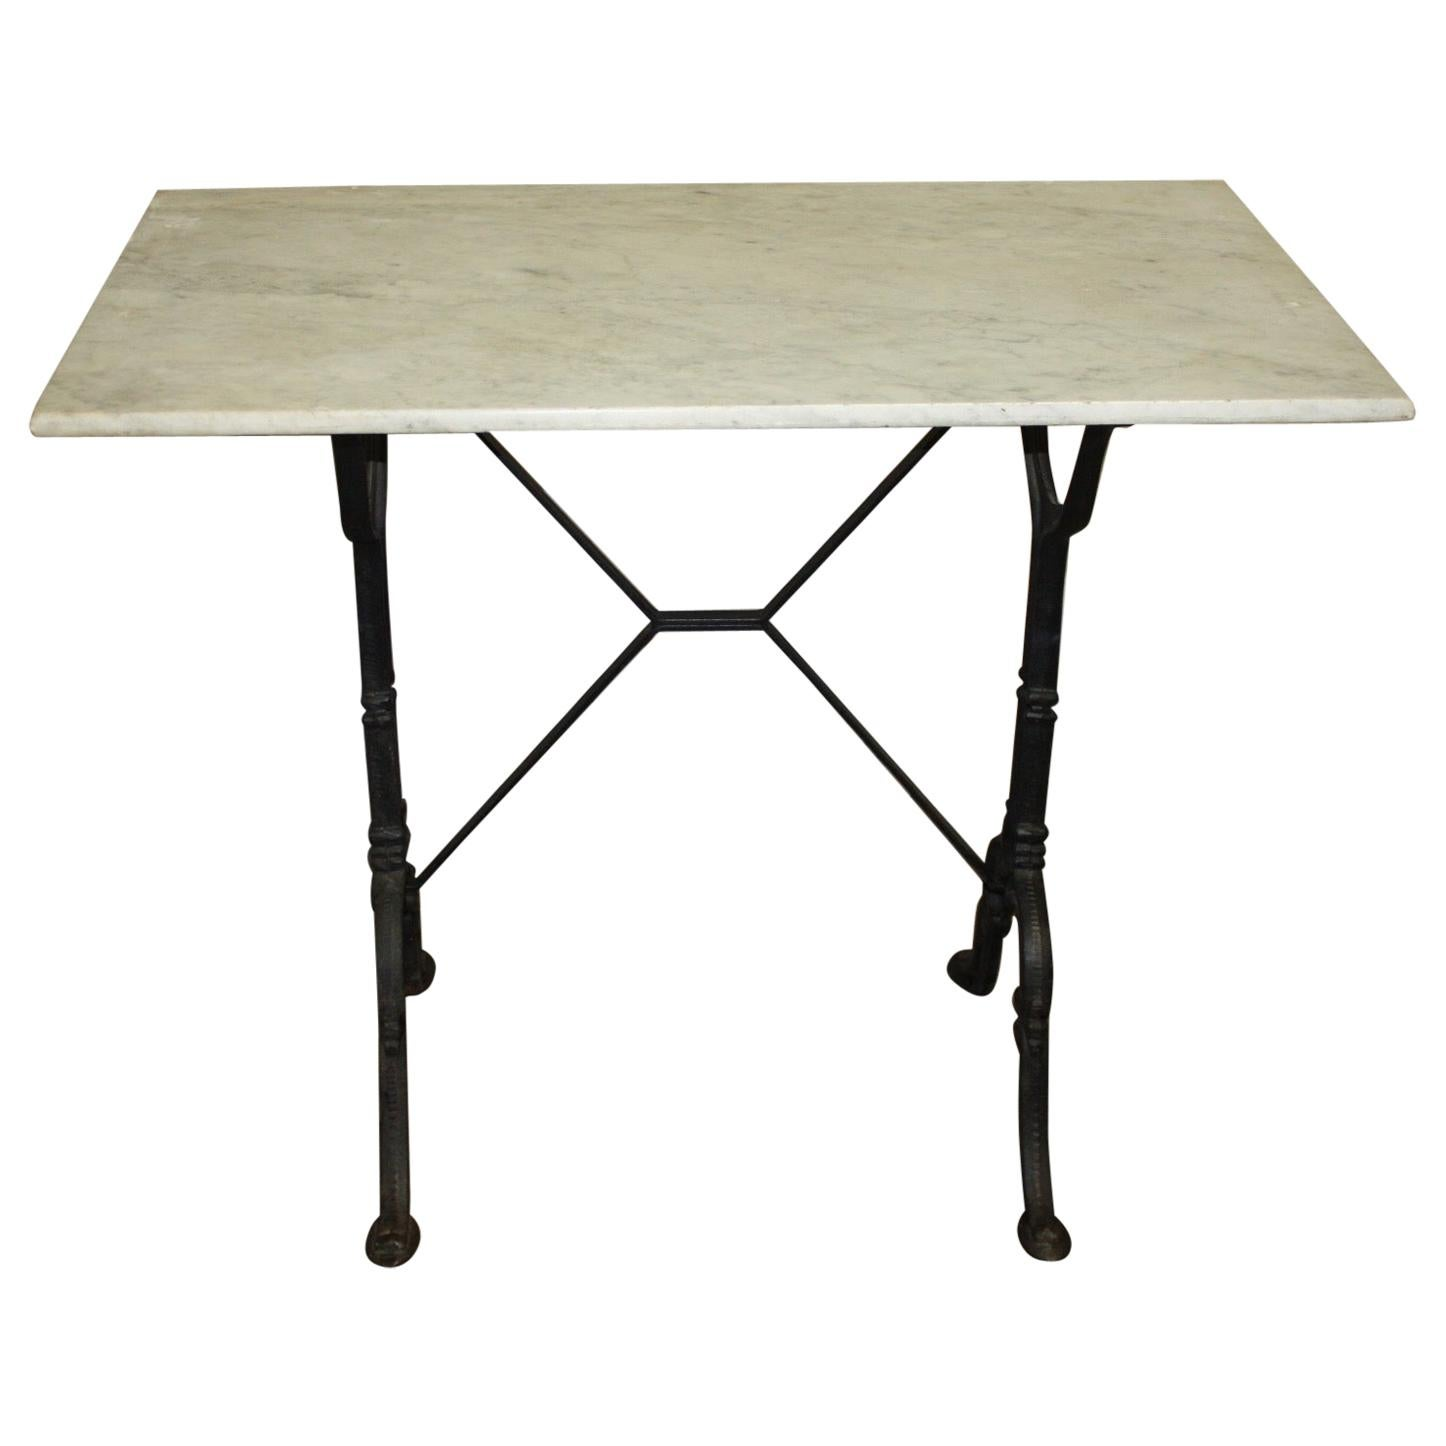 Early 20th Century French Bistro Table